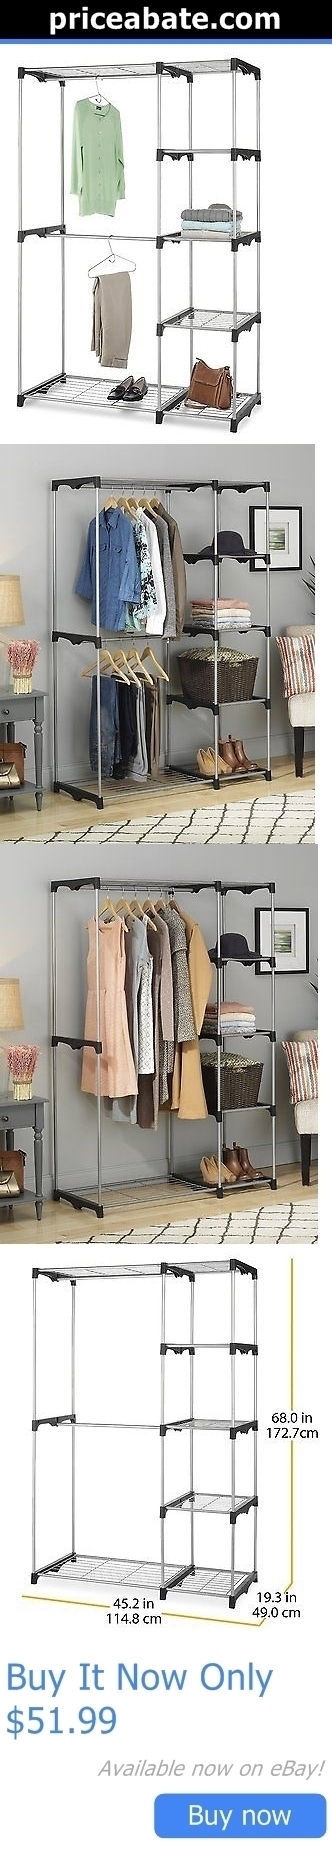 Household Items: Whitmor Closet Organizer Systems Wardrobe Storage Rack  Clothes Shelf Hanging Rod BUY IT